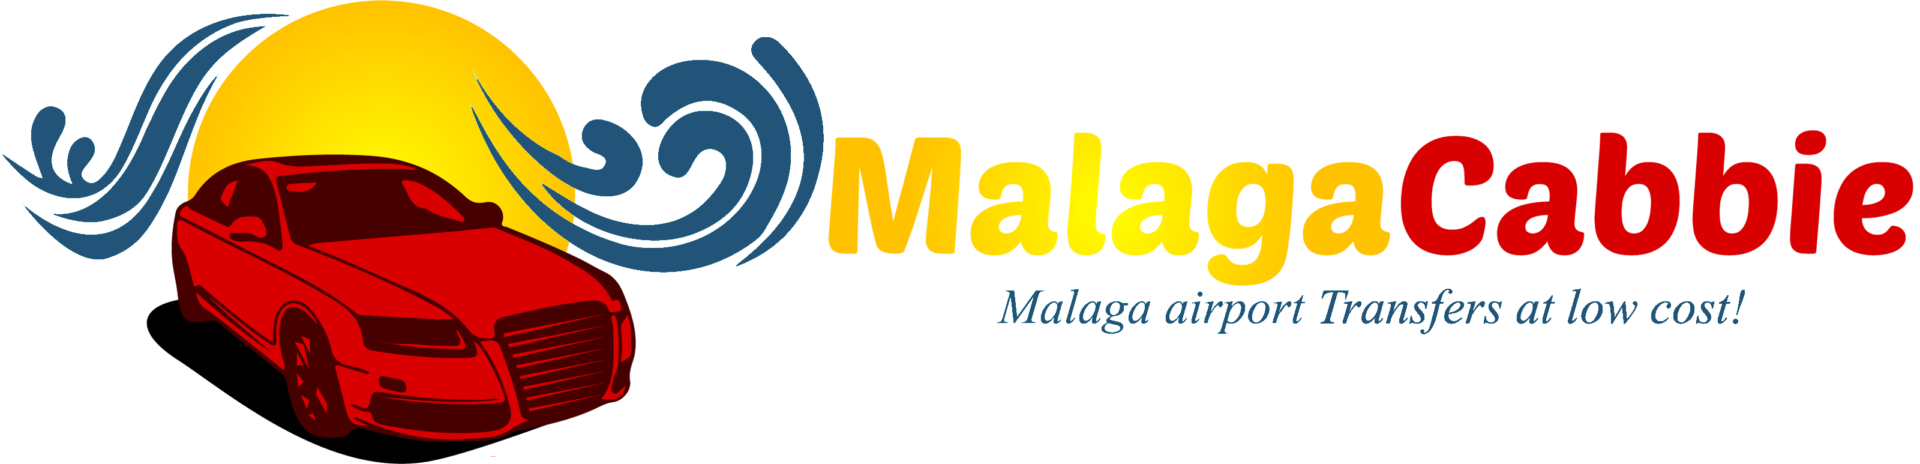 Malaga Cabbie | Pre book your transportation to Malaga Airport with Malaga Cabbie